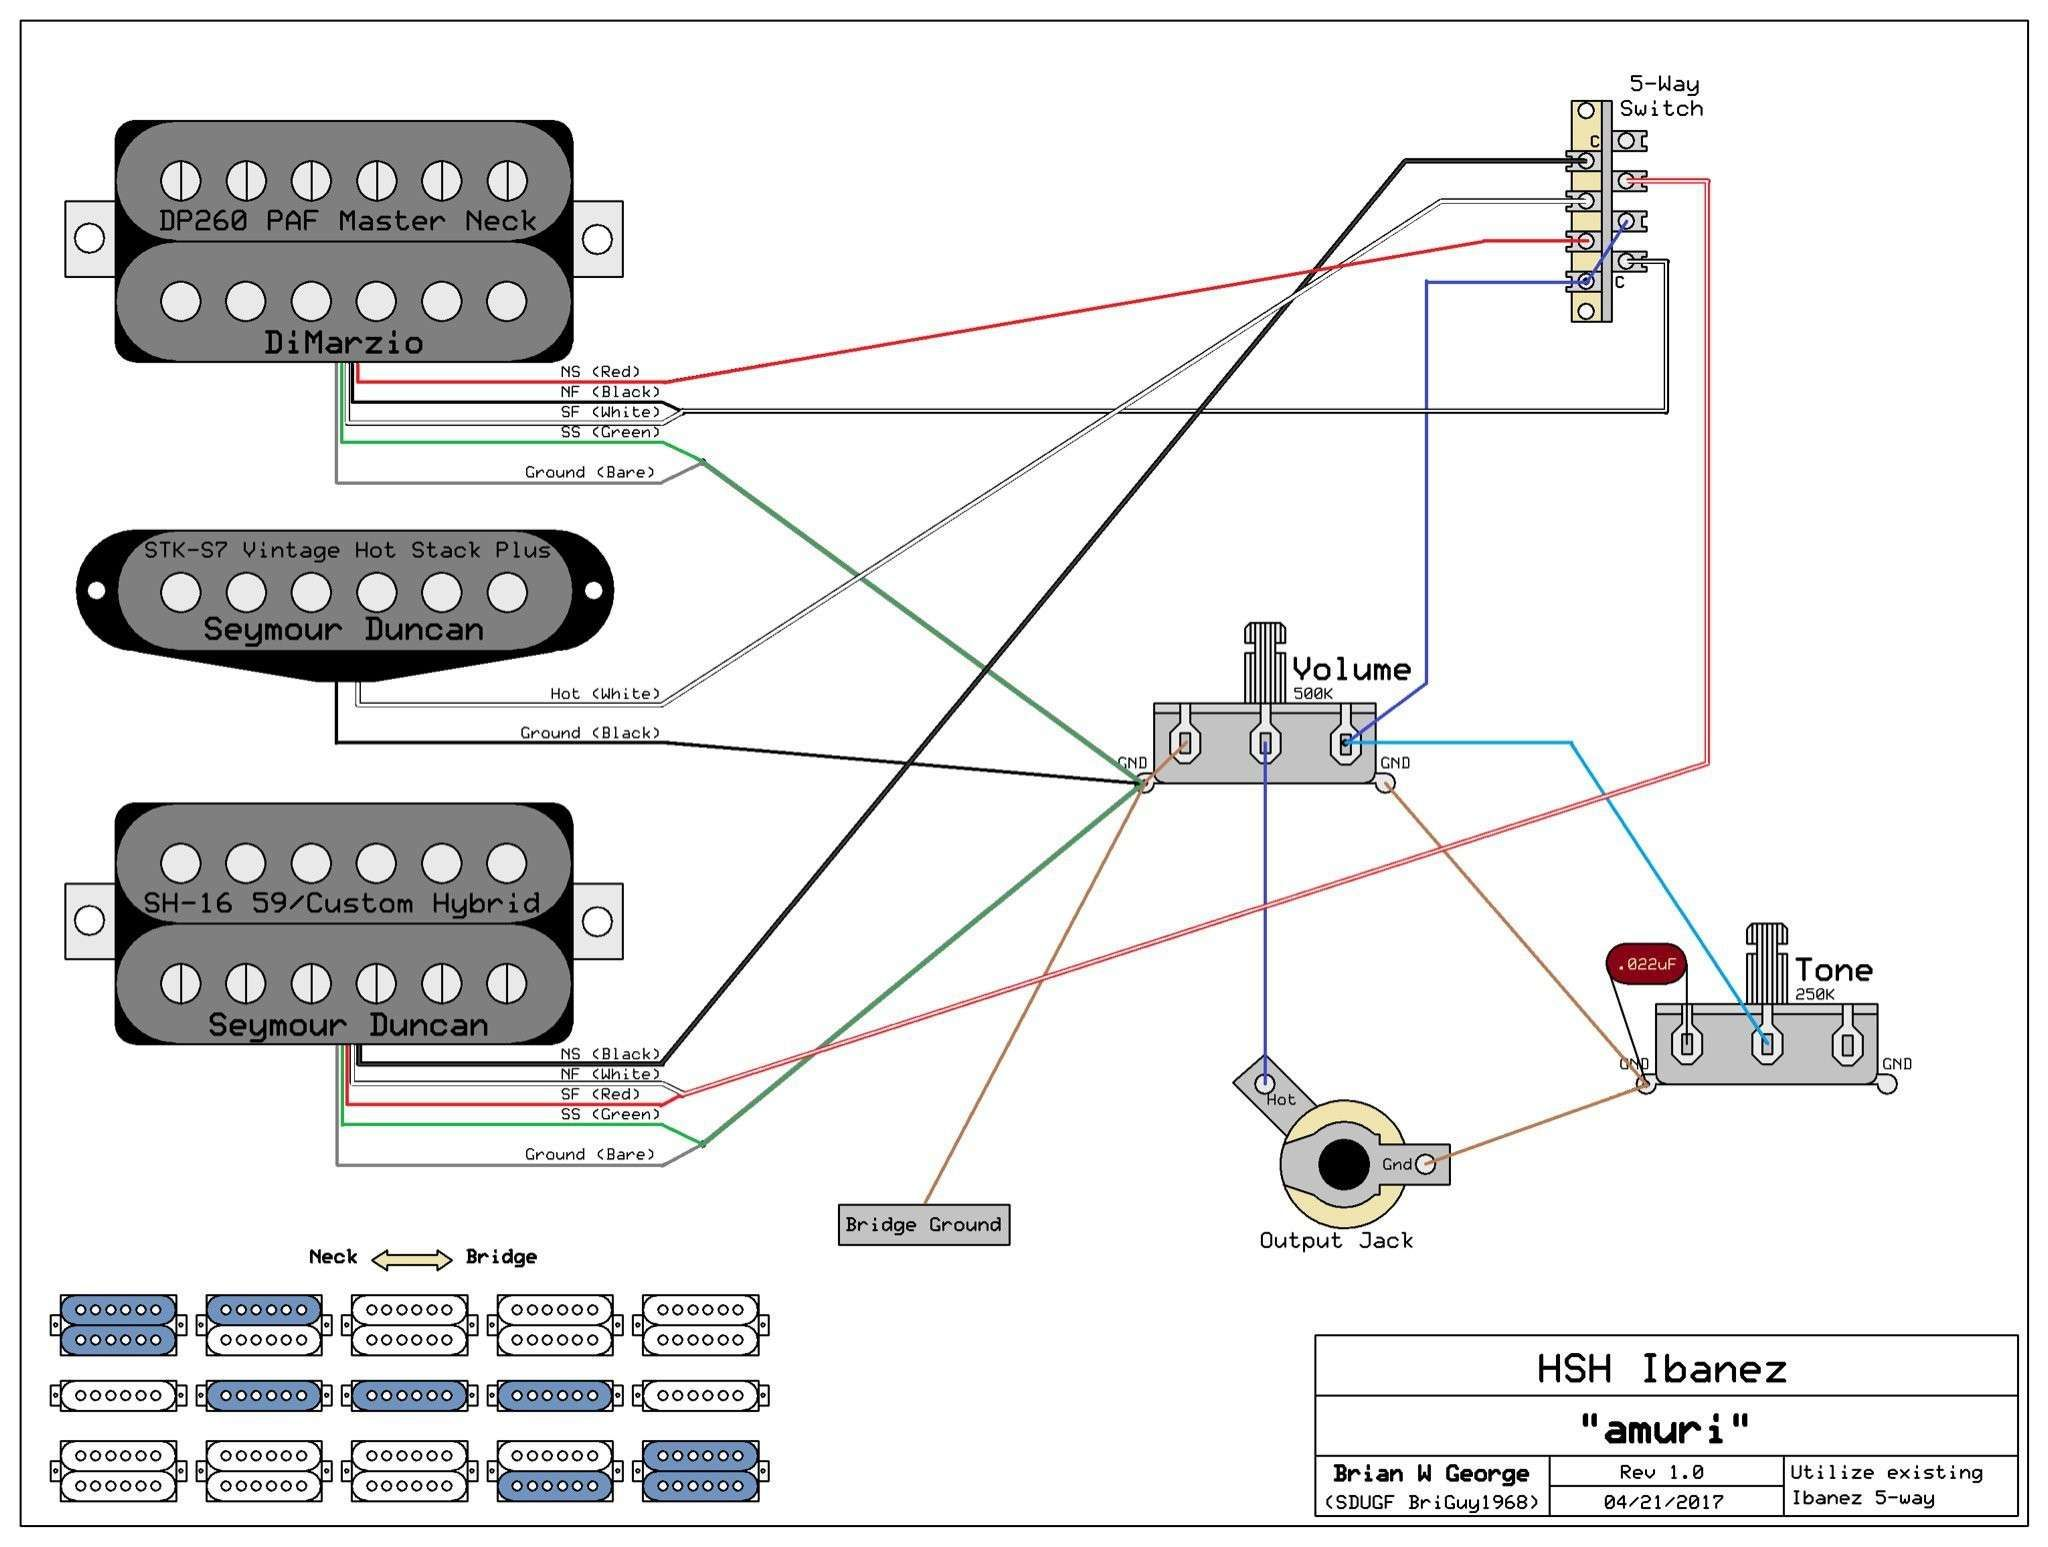 wiring diagram 3 way switch awesome ibanez electric guitar wiring diagram  fresh 3 way switch luxury